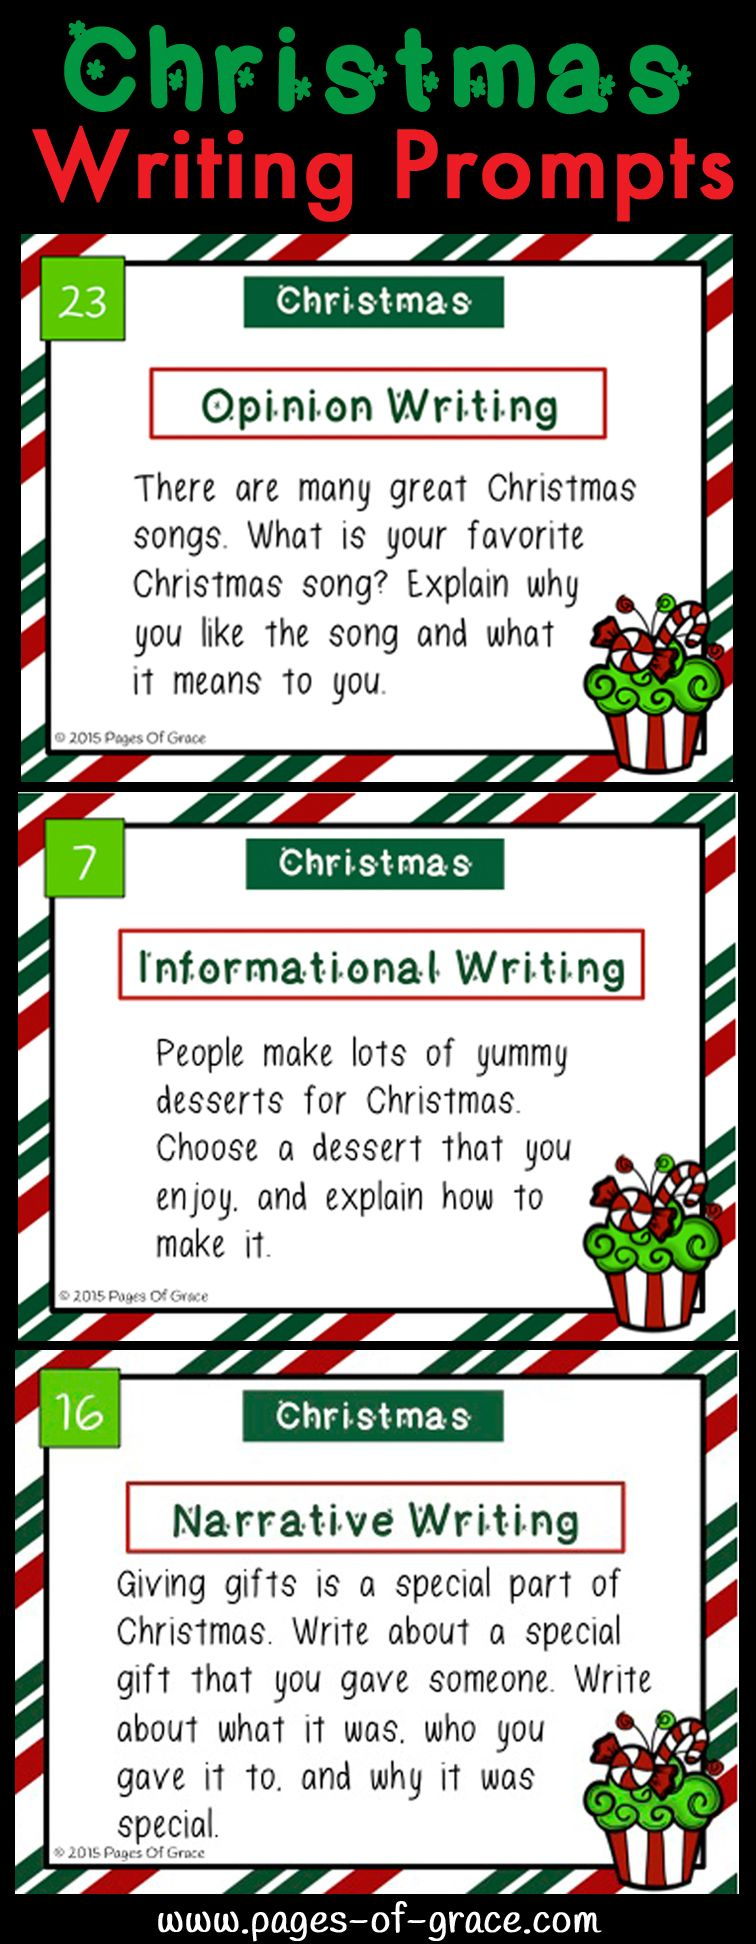 enjoyable holiday essay Get help enjoyable holiday essay with your writing home contacts unique designs & events enjoyable holiday essay home home enjoyable holiday essay.